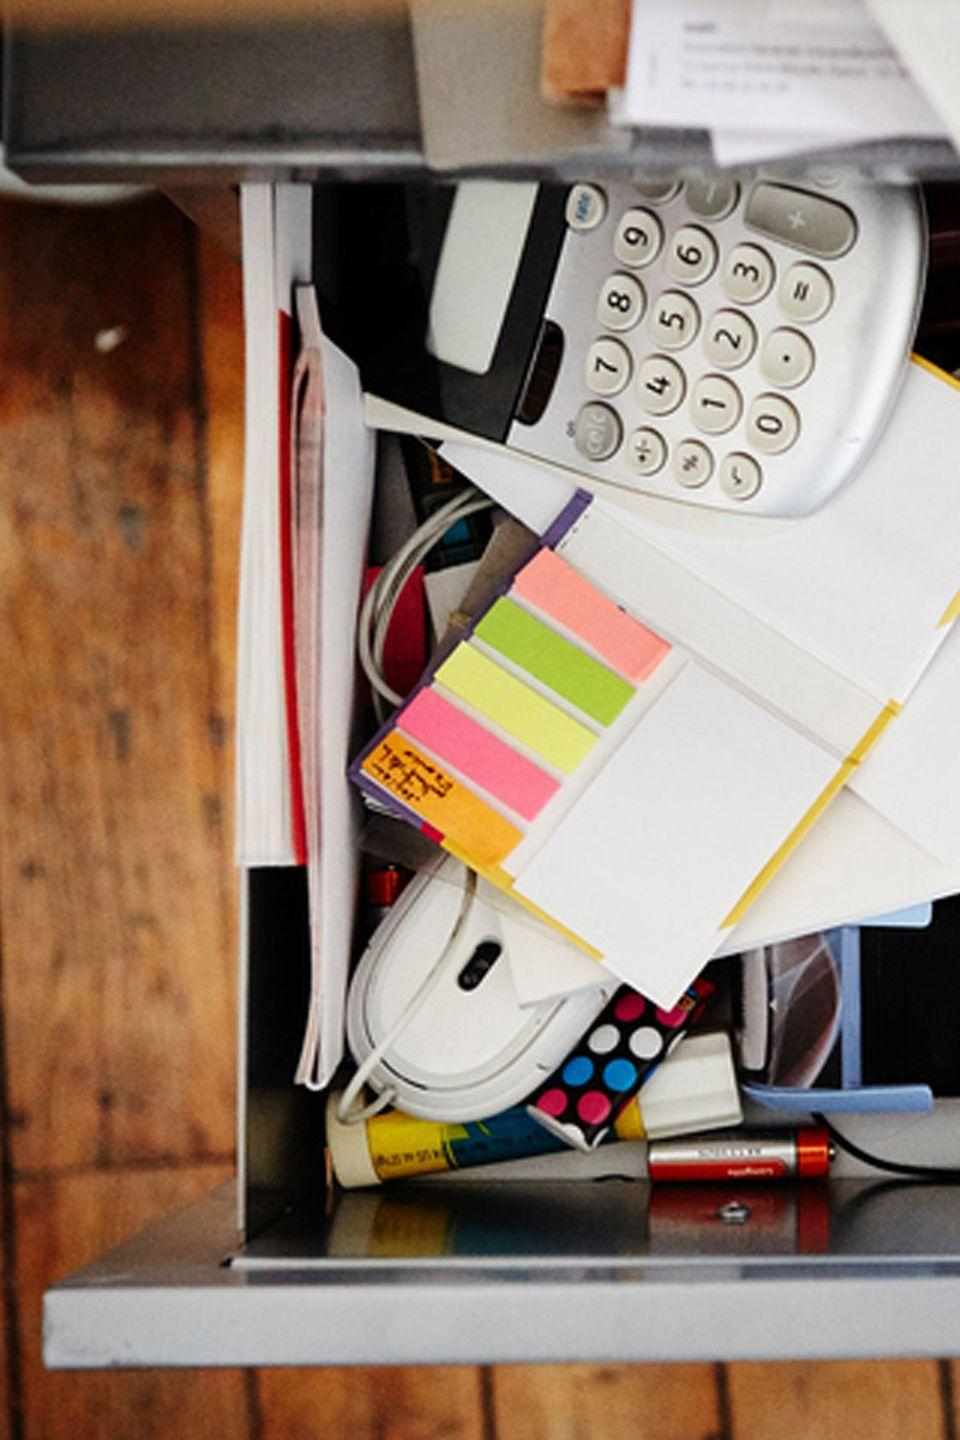 "<p>Even if you work from home, you'll never go through 20 Post-it note pads. Donate them to a non-profit or charitable organization. Still have a ton left? Here's how to use office supplies to <a href=""https://www.goodhousekeeping.com/home/organizing/g2843/office-supplies-home-organizers/"" rel=""nofollow noopener"" target=""_blank"" data-ylk=""slk:help organize your home"" class=""link rapid-noclick-resp"">help organize your home</a>. </p>"